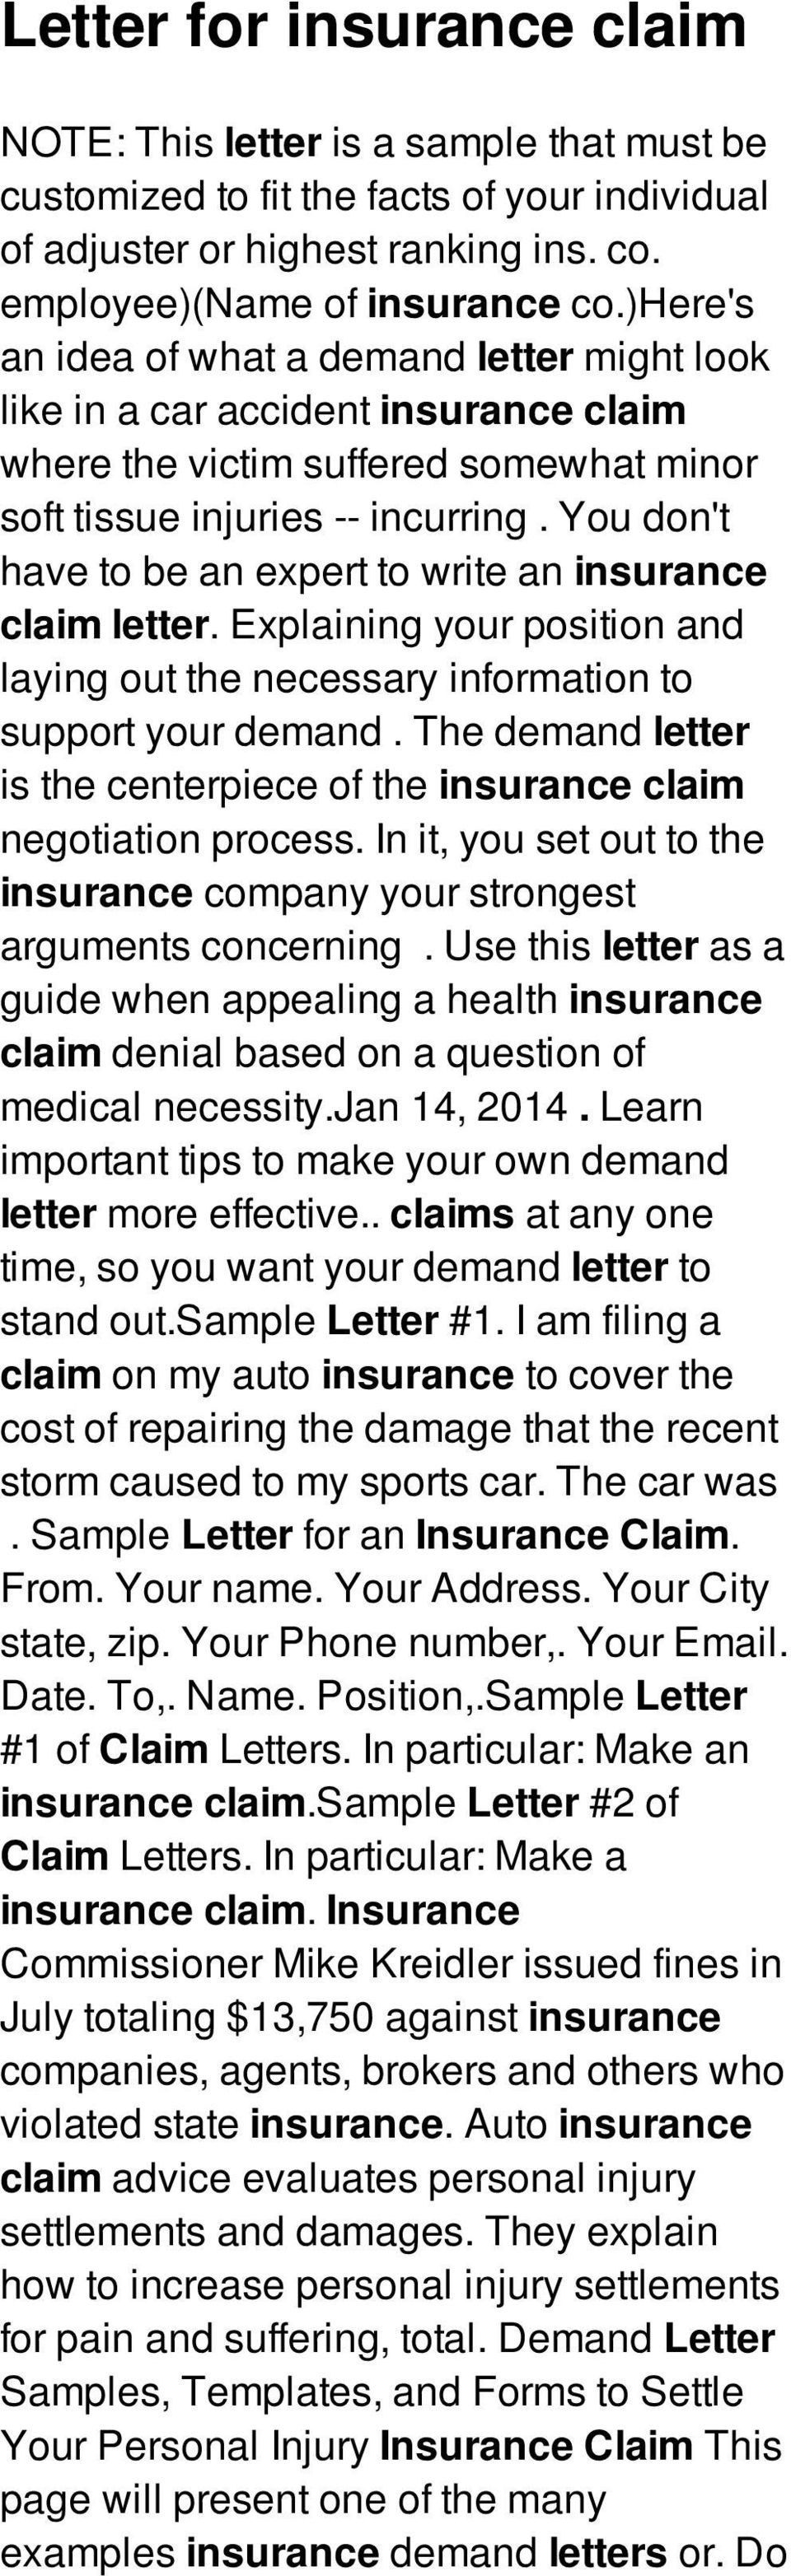 You don't have to be an expert to write an insurance claim letter. Explaining your position and laying out the necessary information to support your demand.